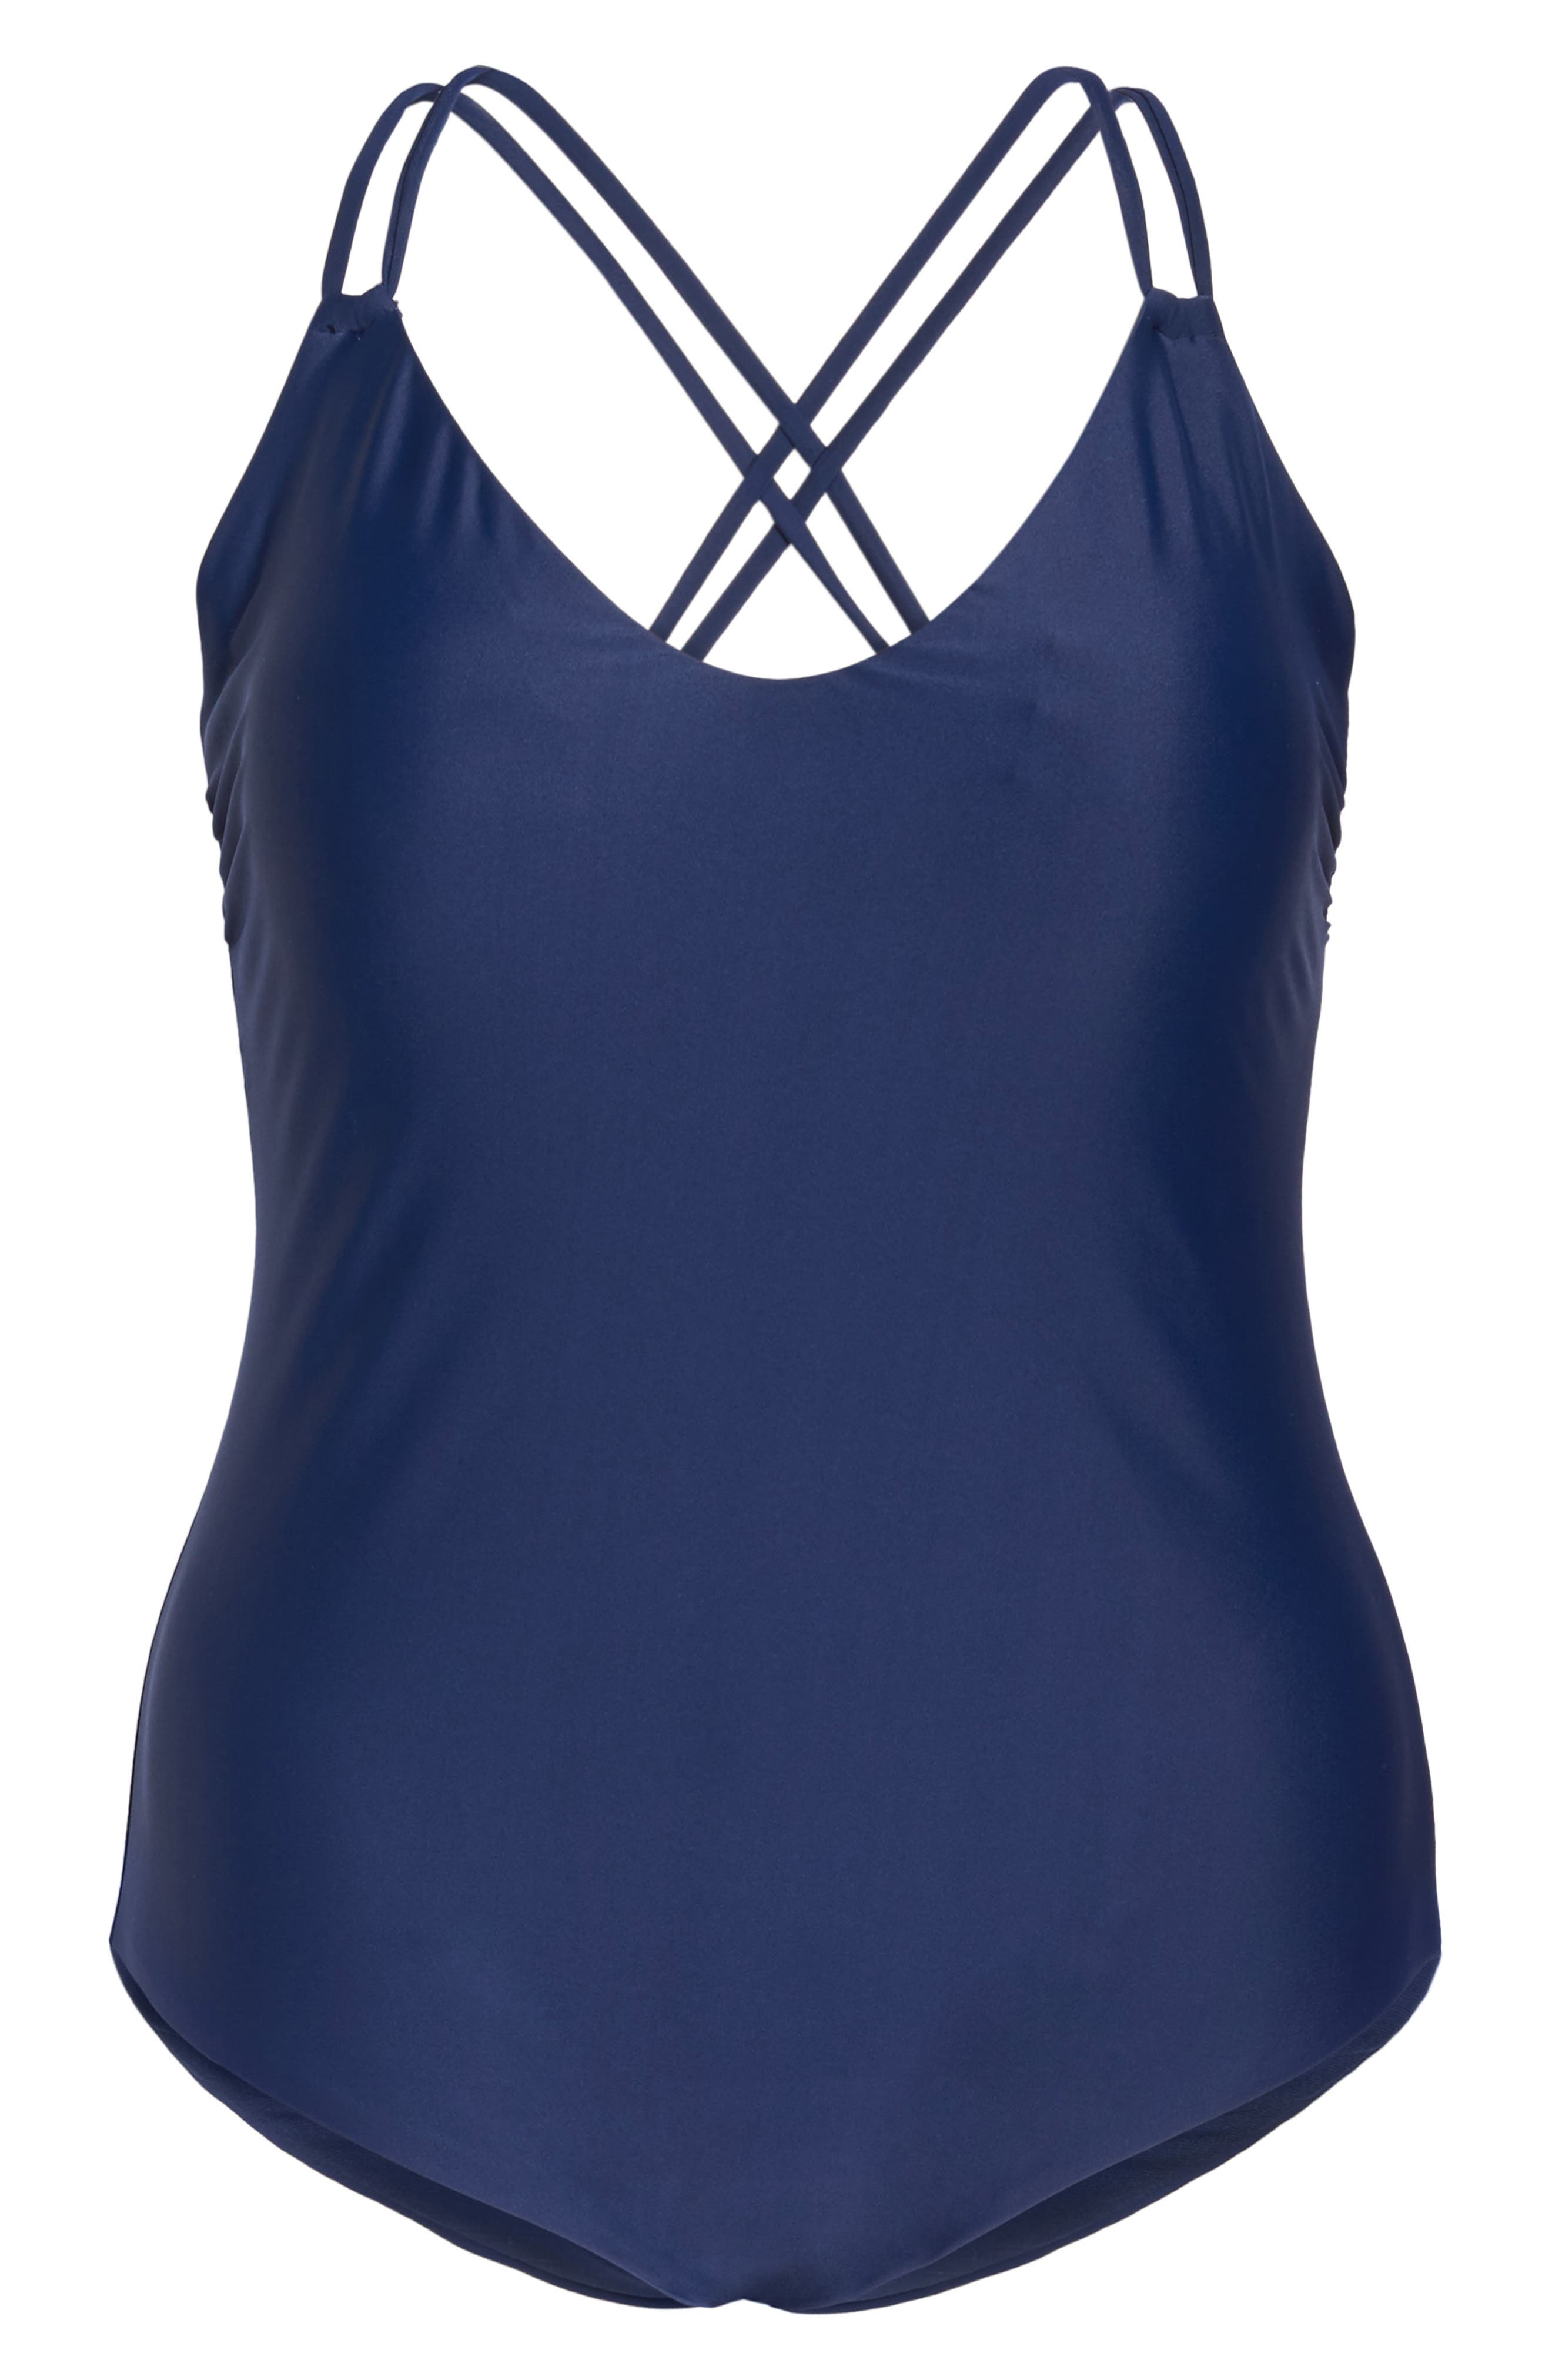 Keep It Simple One-Piece Swimsuit,                             Alternate thumbnail 6, color,                             Navy